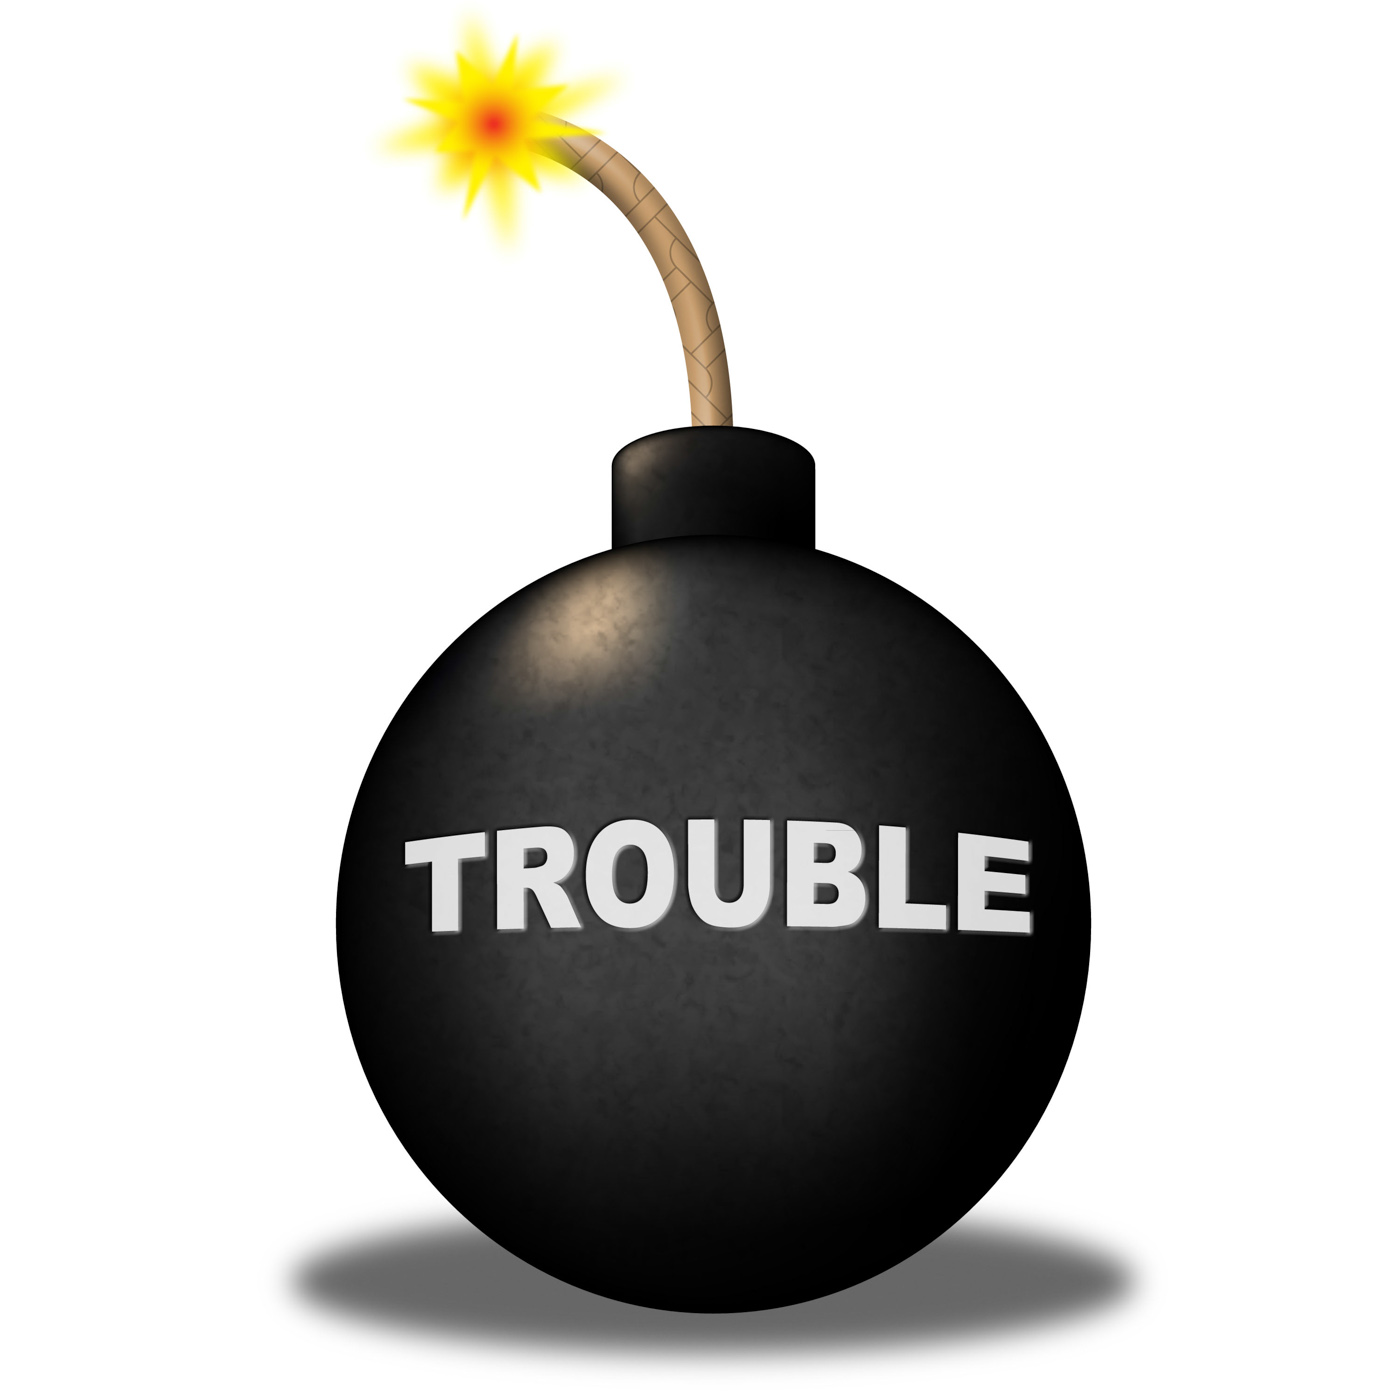 Trouble alert means stumbling block and advisory photo